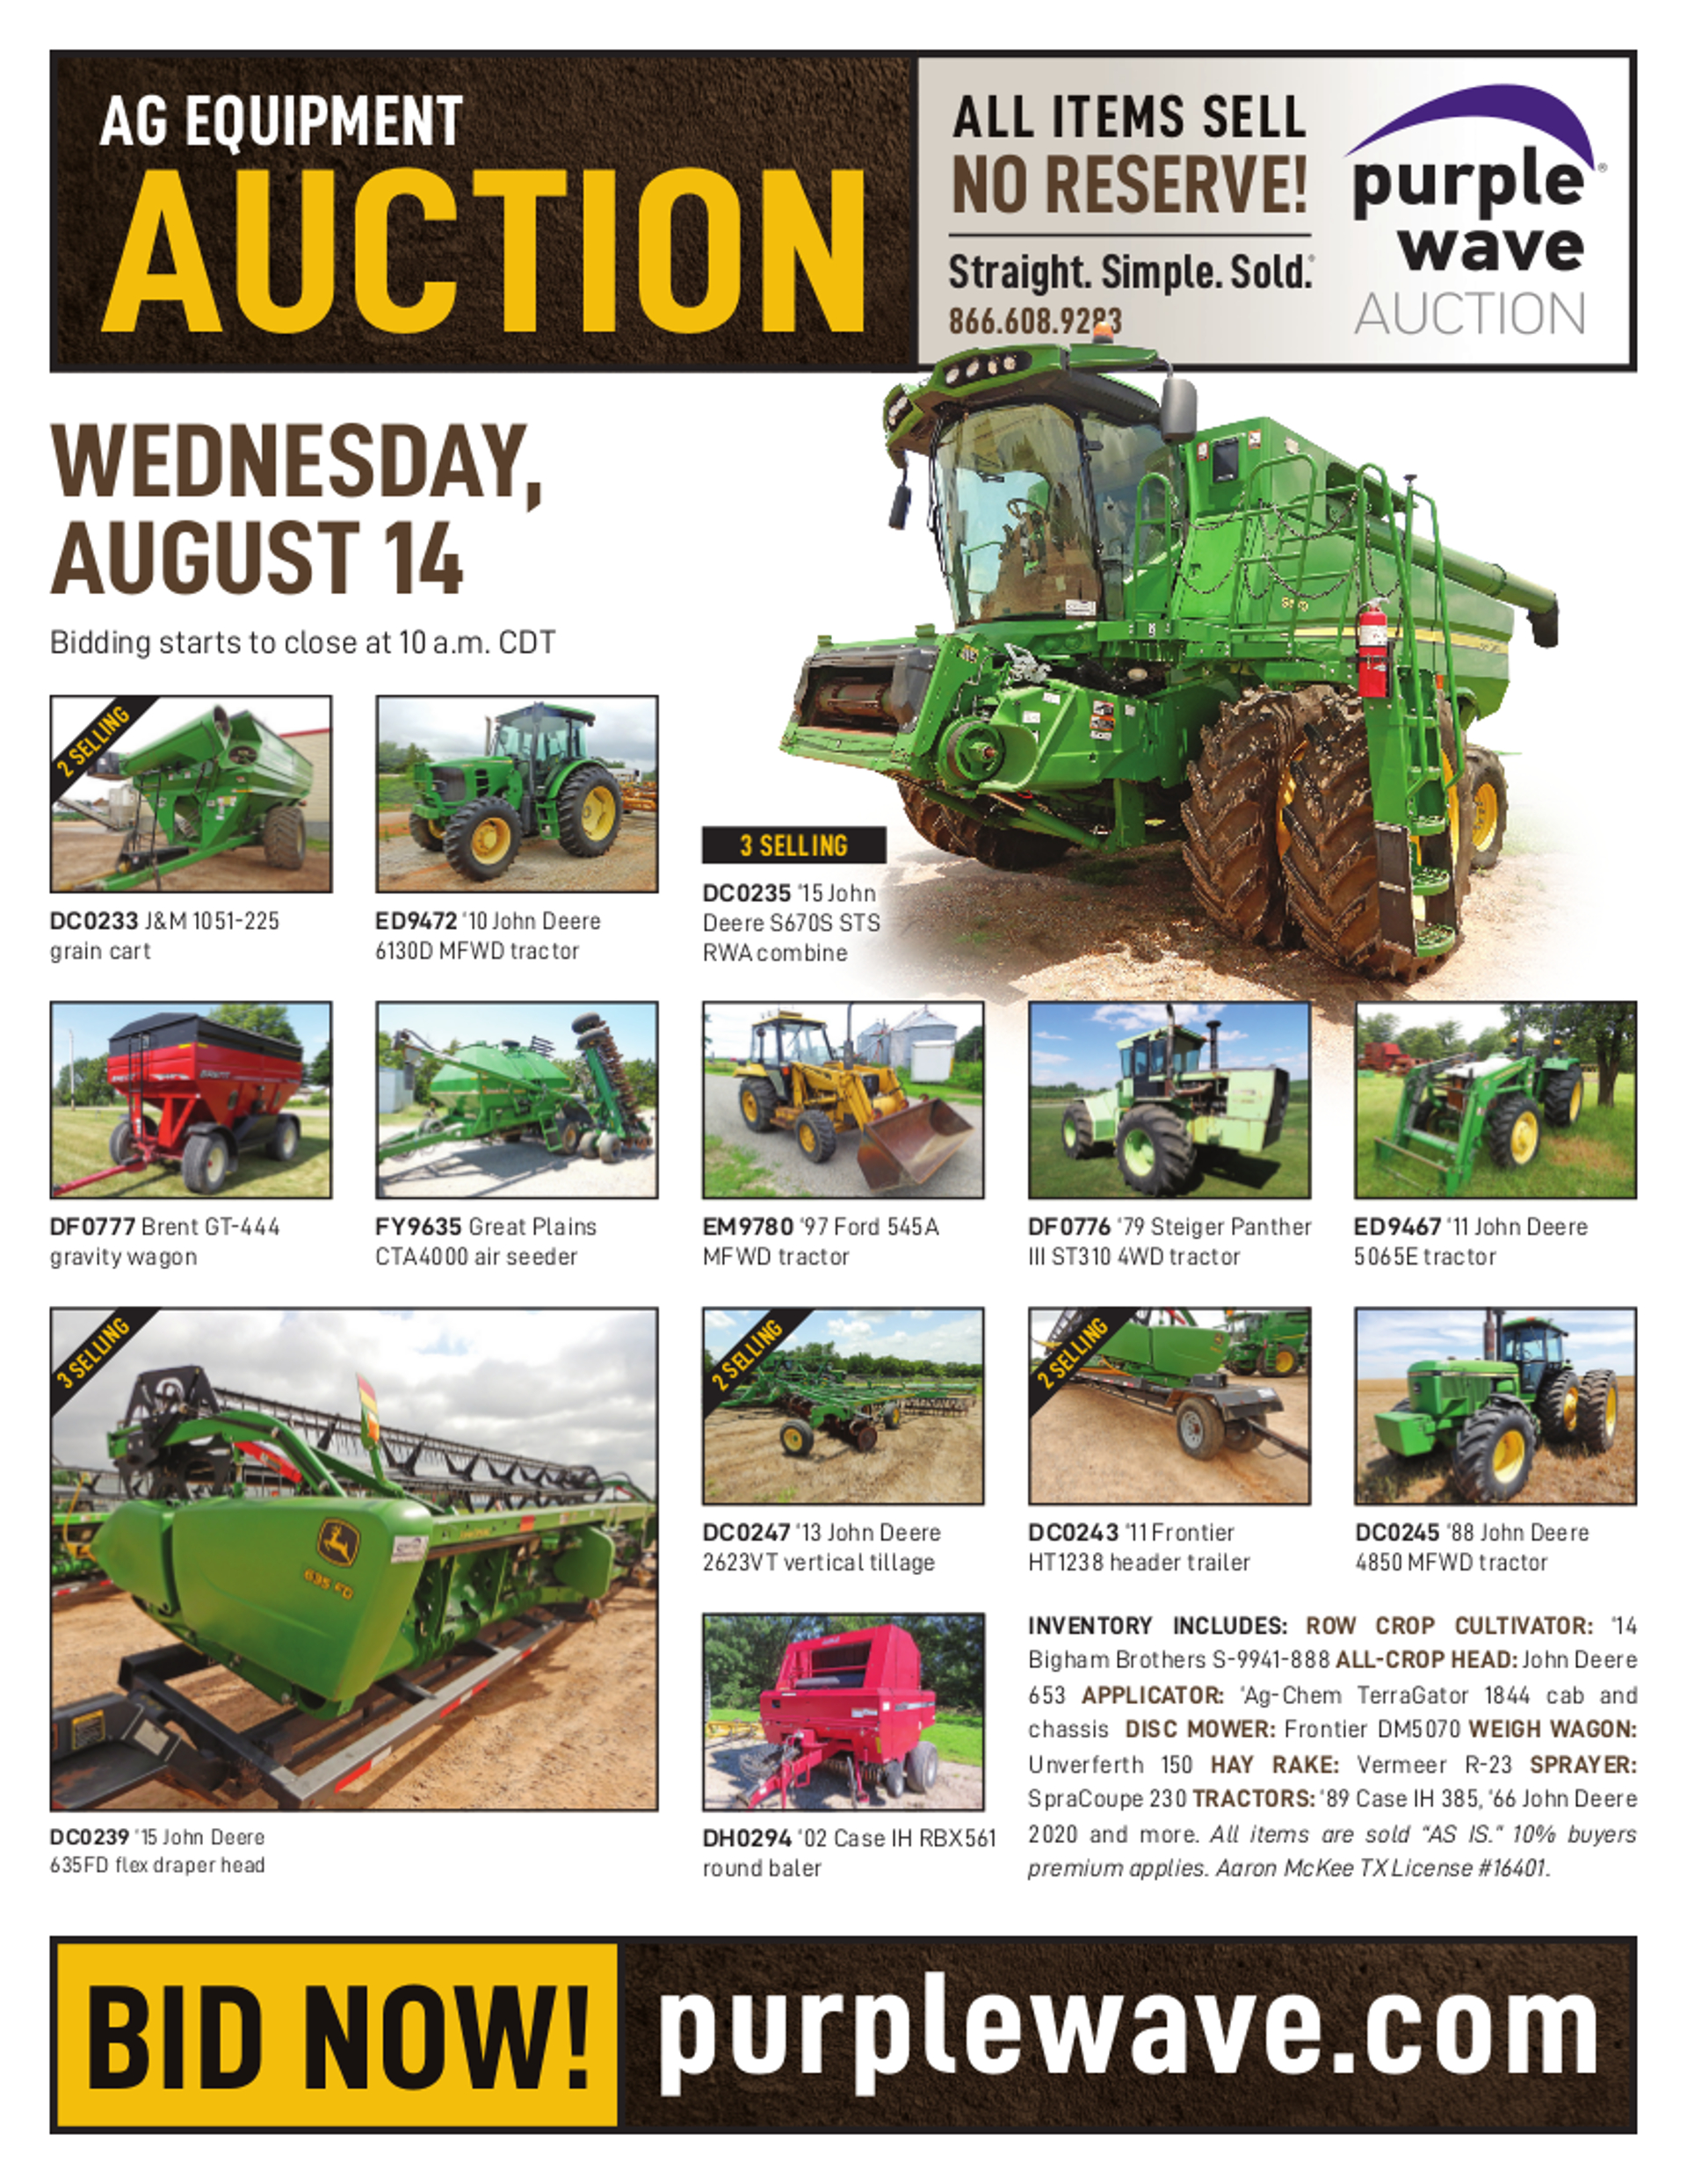 SOLD! August 14 Ag Equipment Auction | PurpleWave, Inc